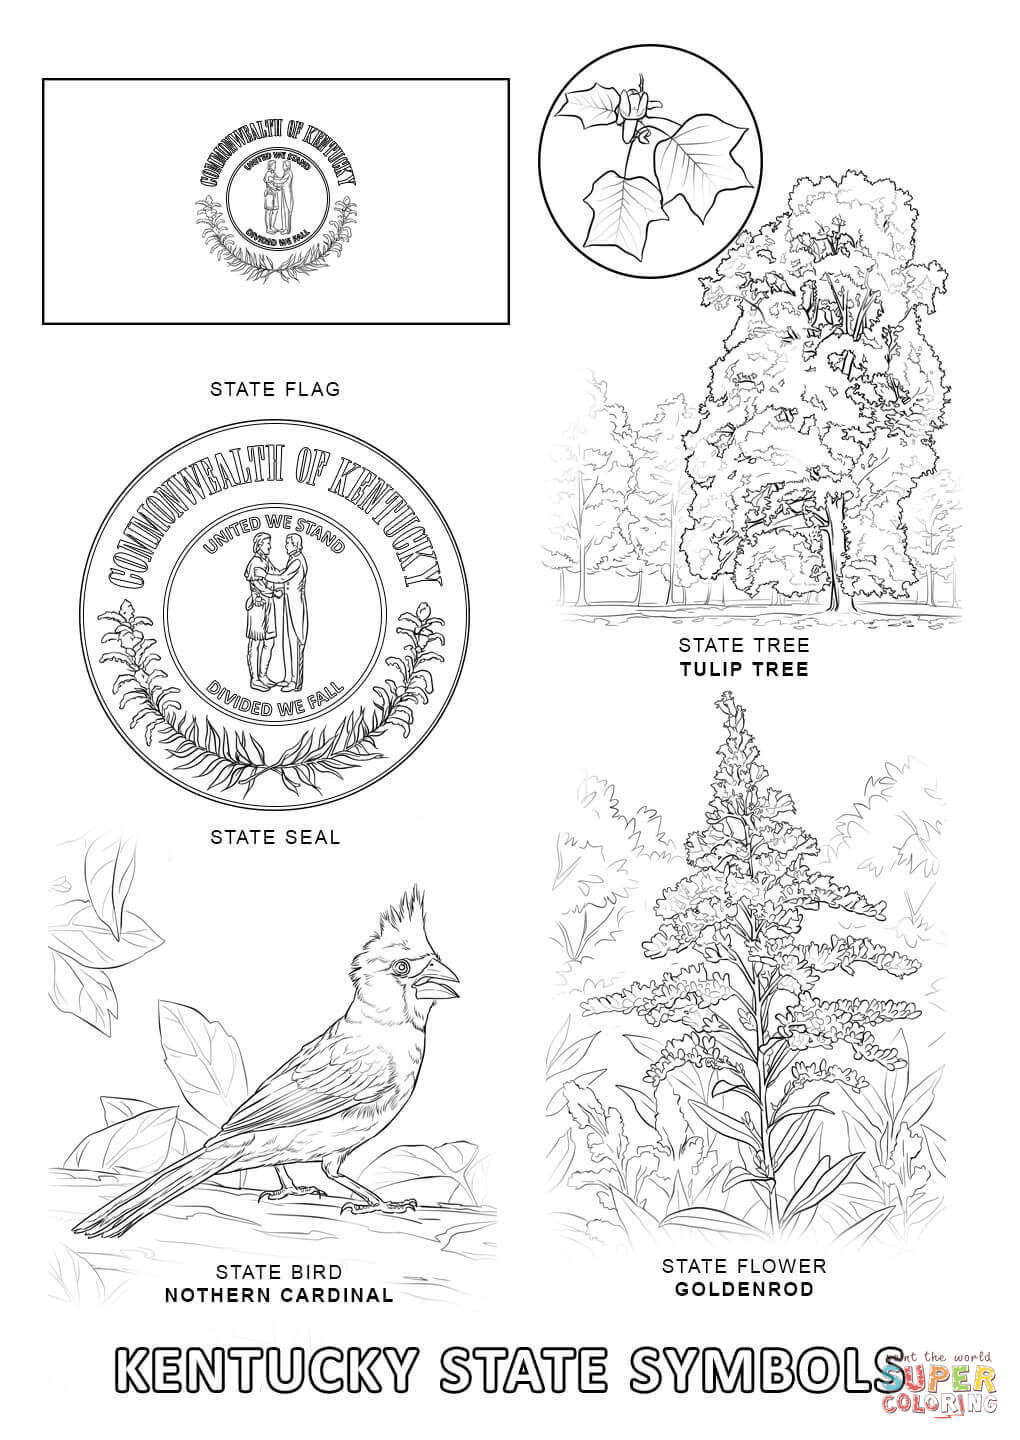 georgia state symbols coloring pages - photo#28